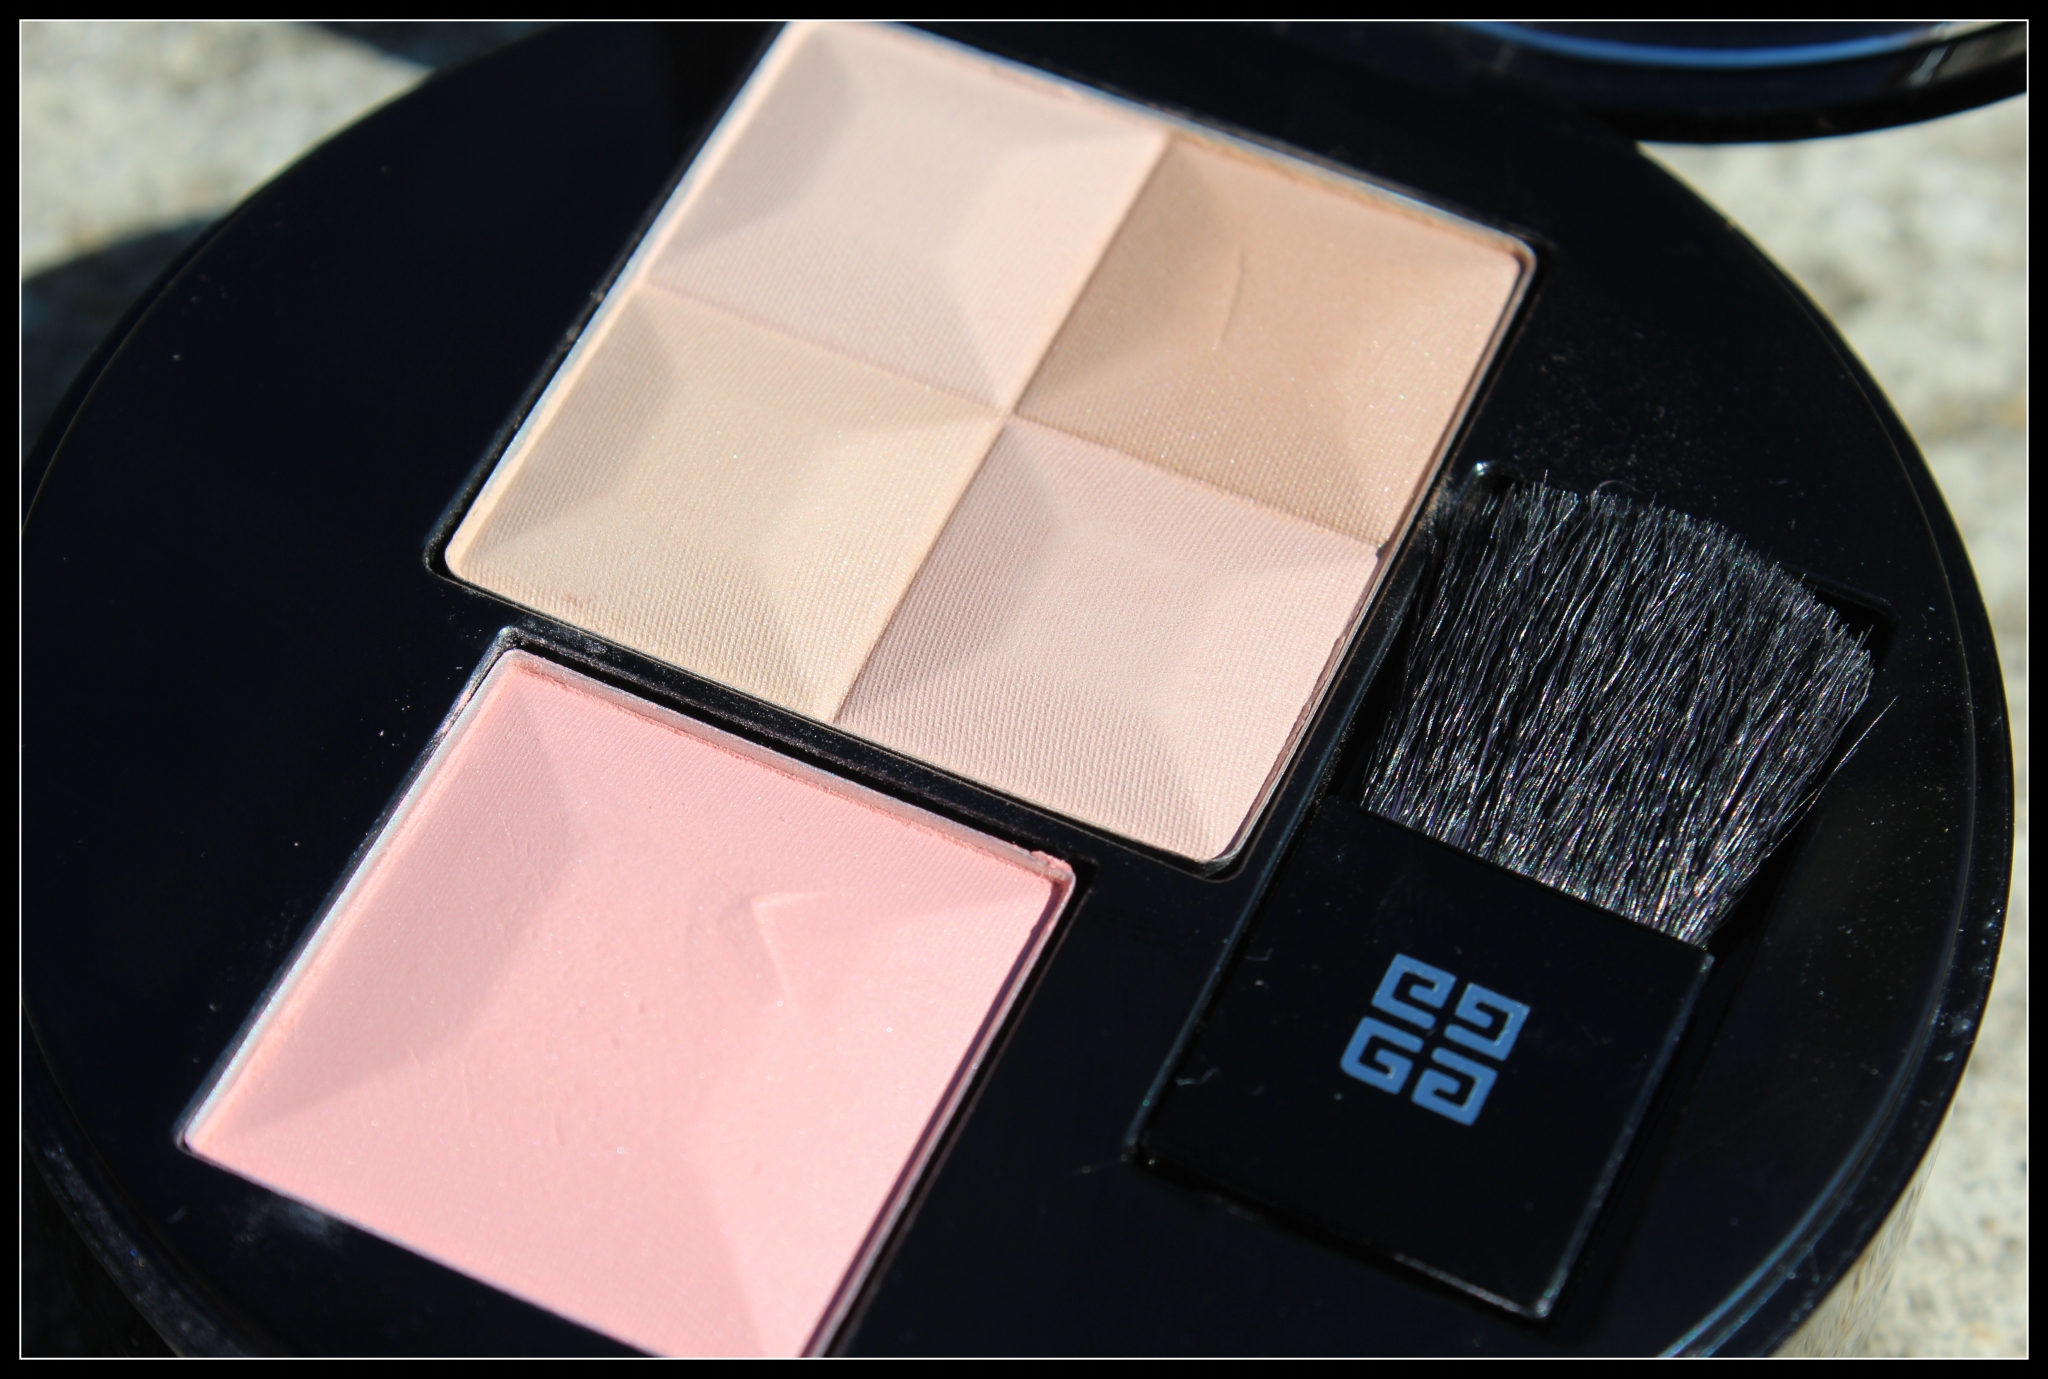 La palette glamour on the go de givenchy jujuteam blog for Givenchy teint miroir